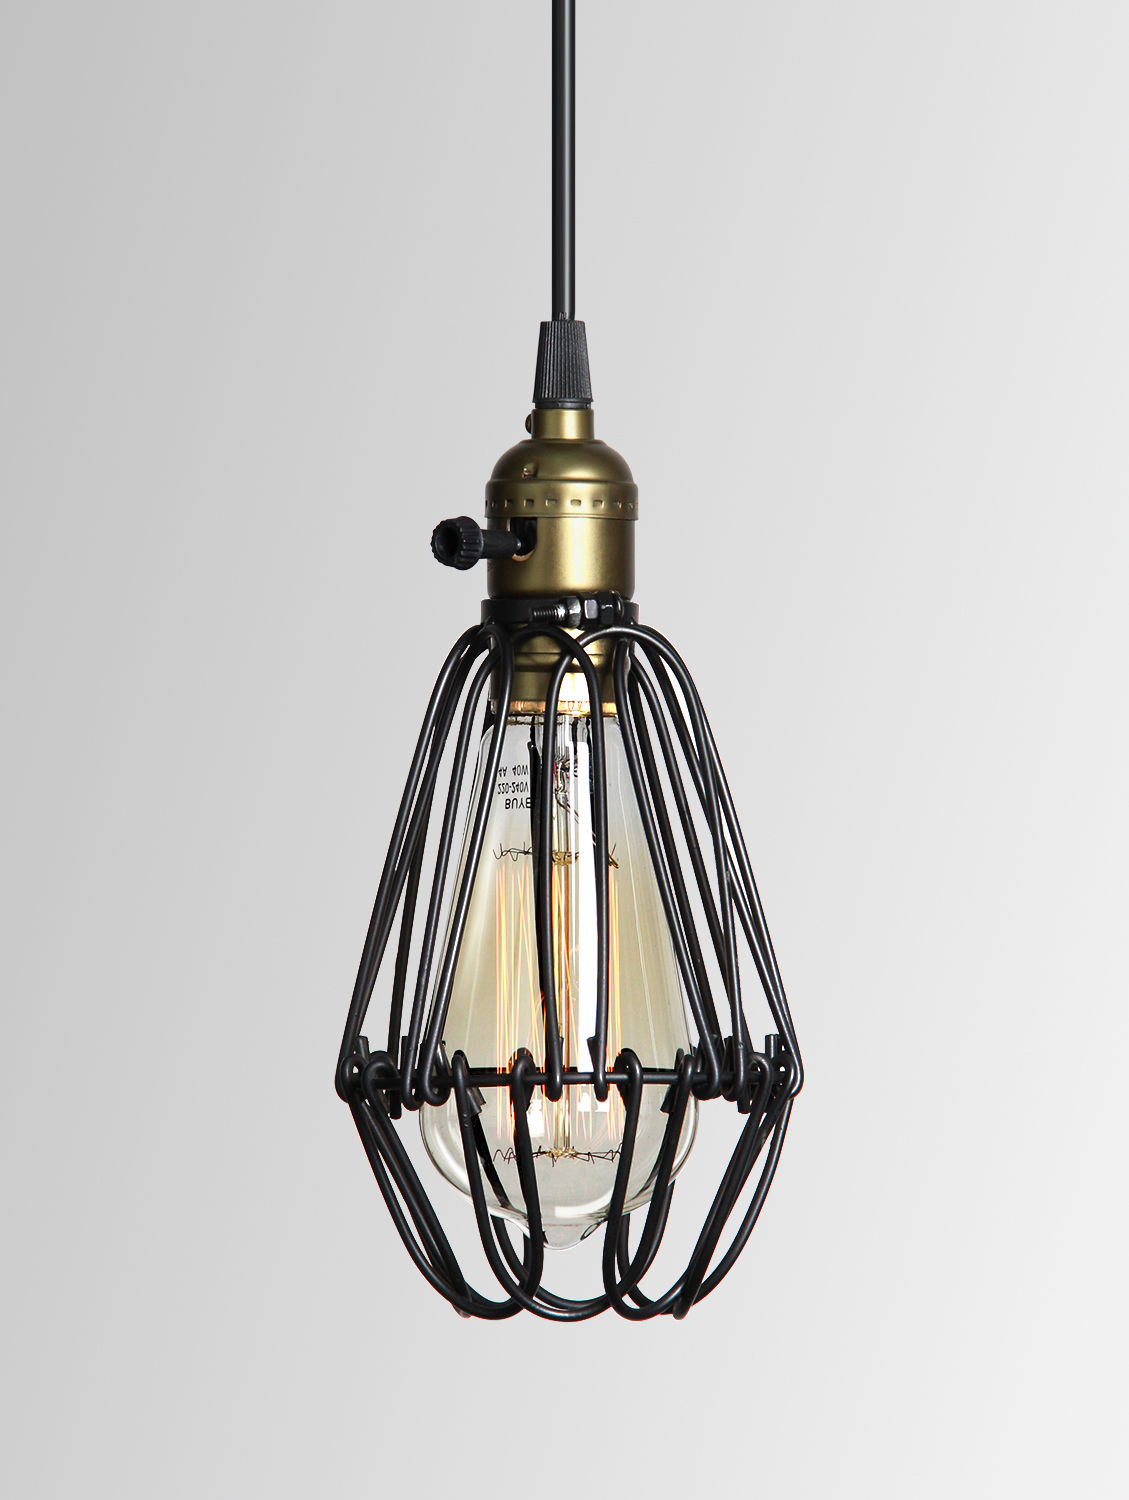 Edison Bird Cage Pendant Lamp Industrial Lighting Ul Saa Antique Cage Pendant Lamp From China Manufacturer Lonwing Lighting Factory Co Ltd